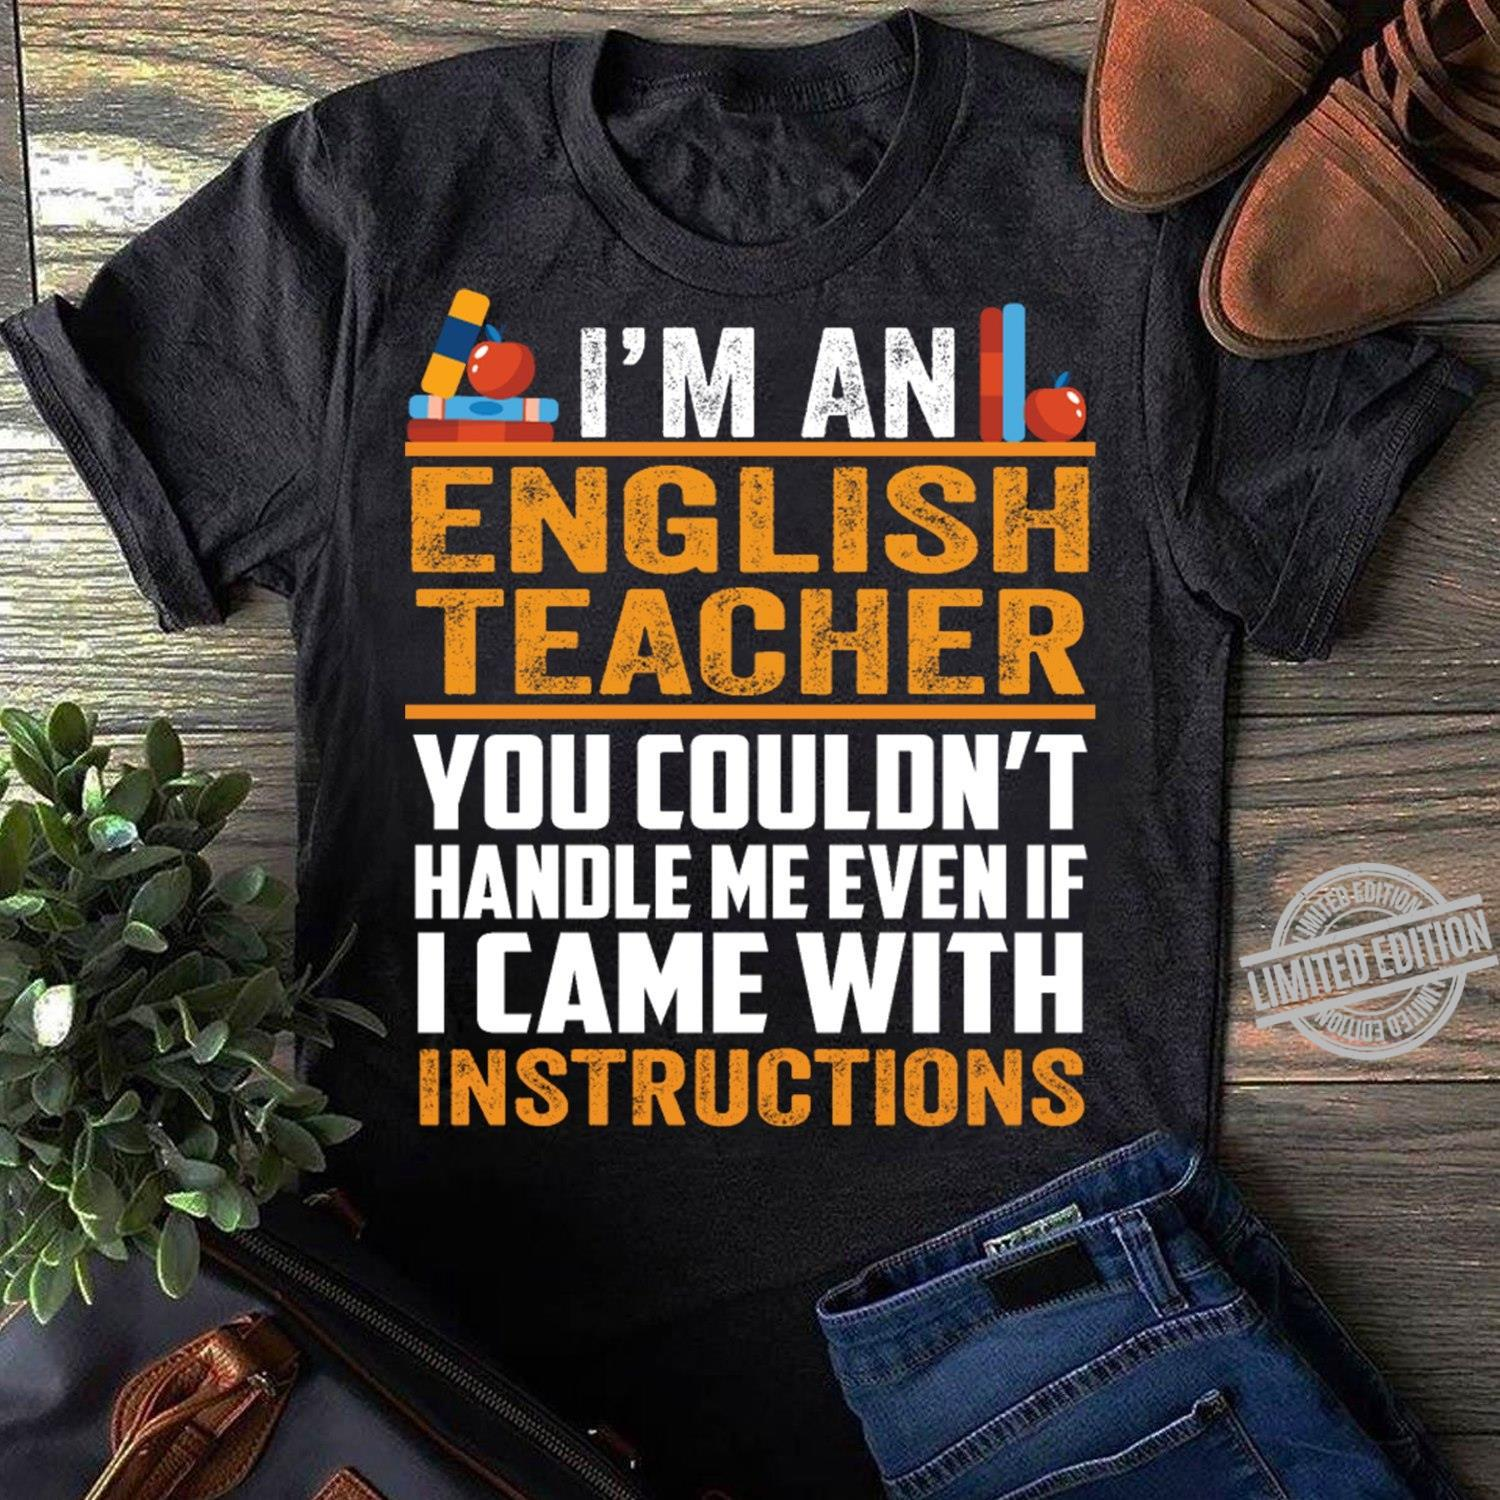 I'm An English Teacher You Couldn't Handle Me Even IF I Came With Instructions Shirt